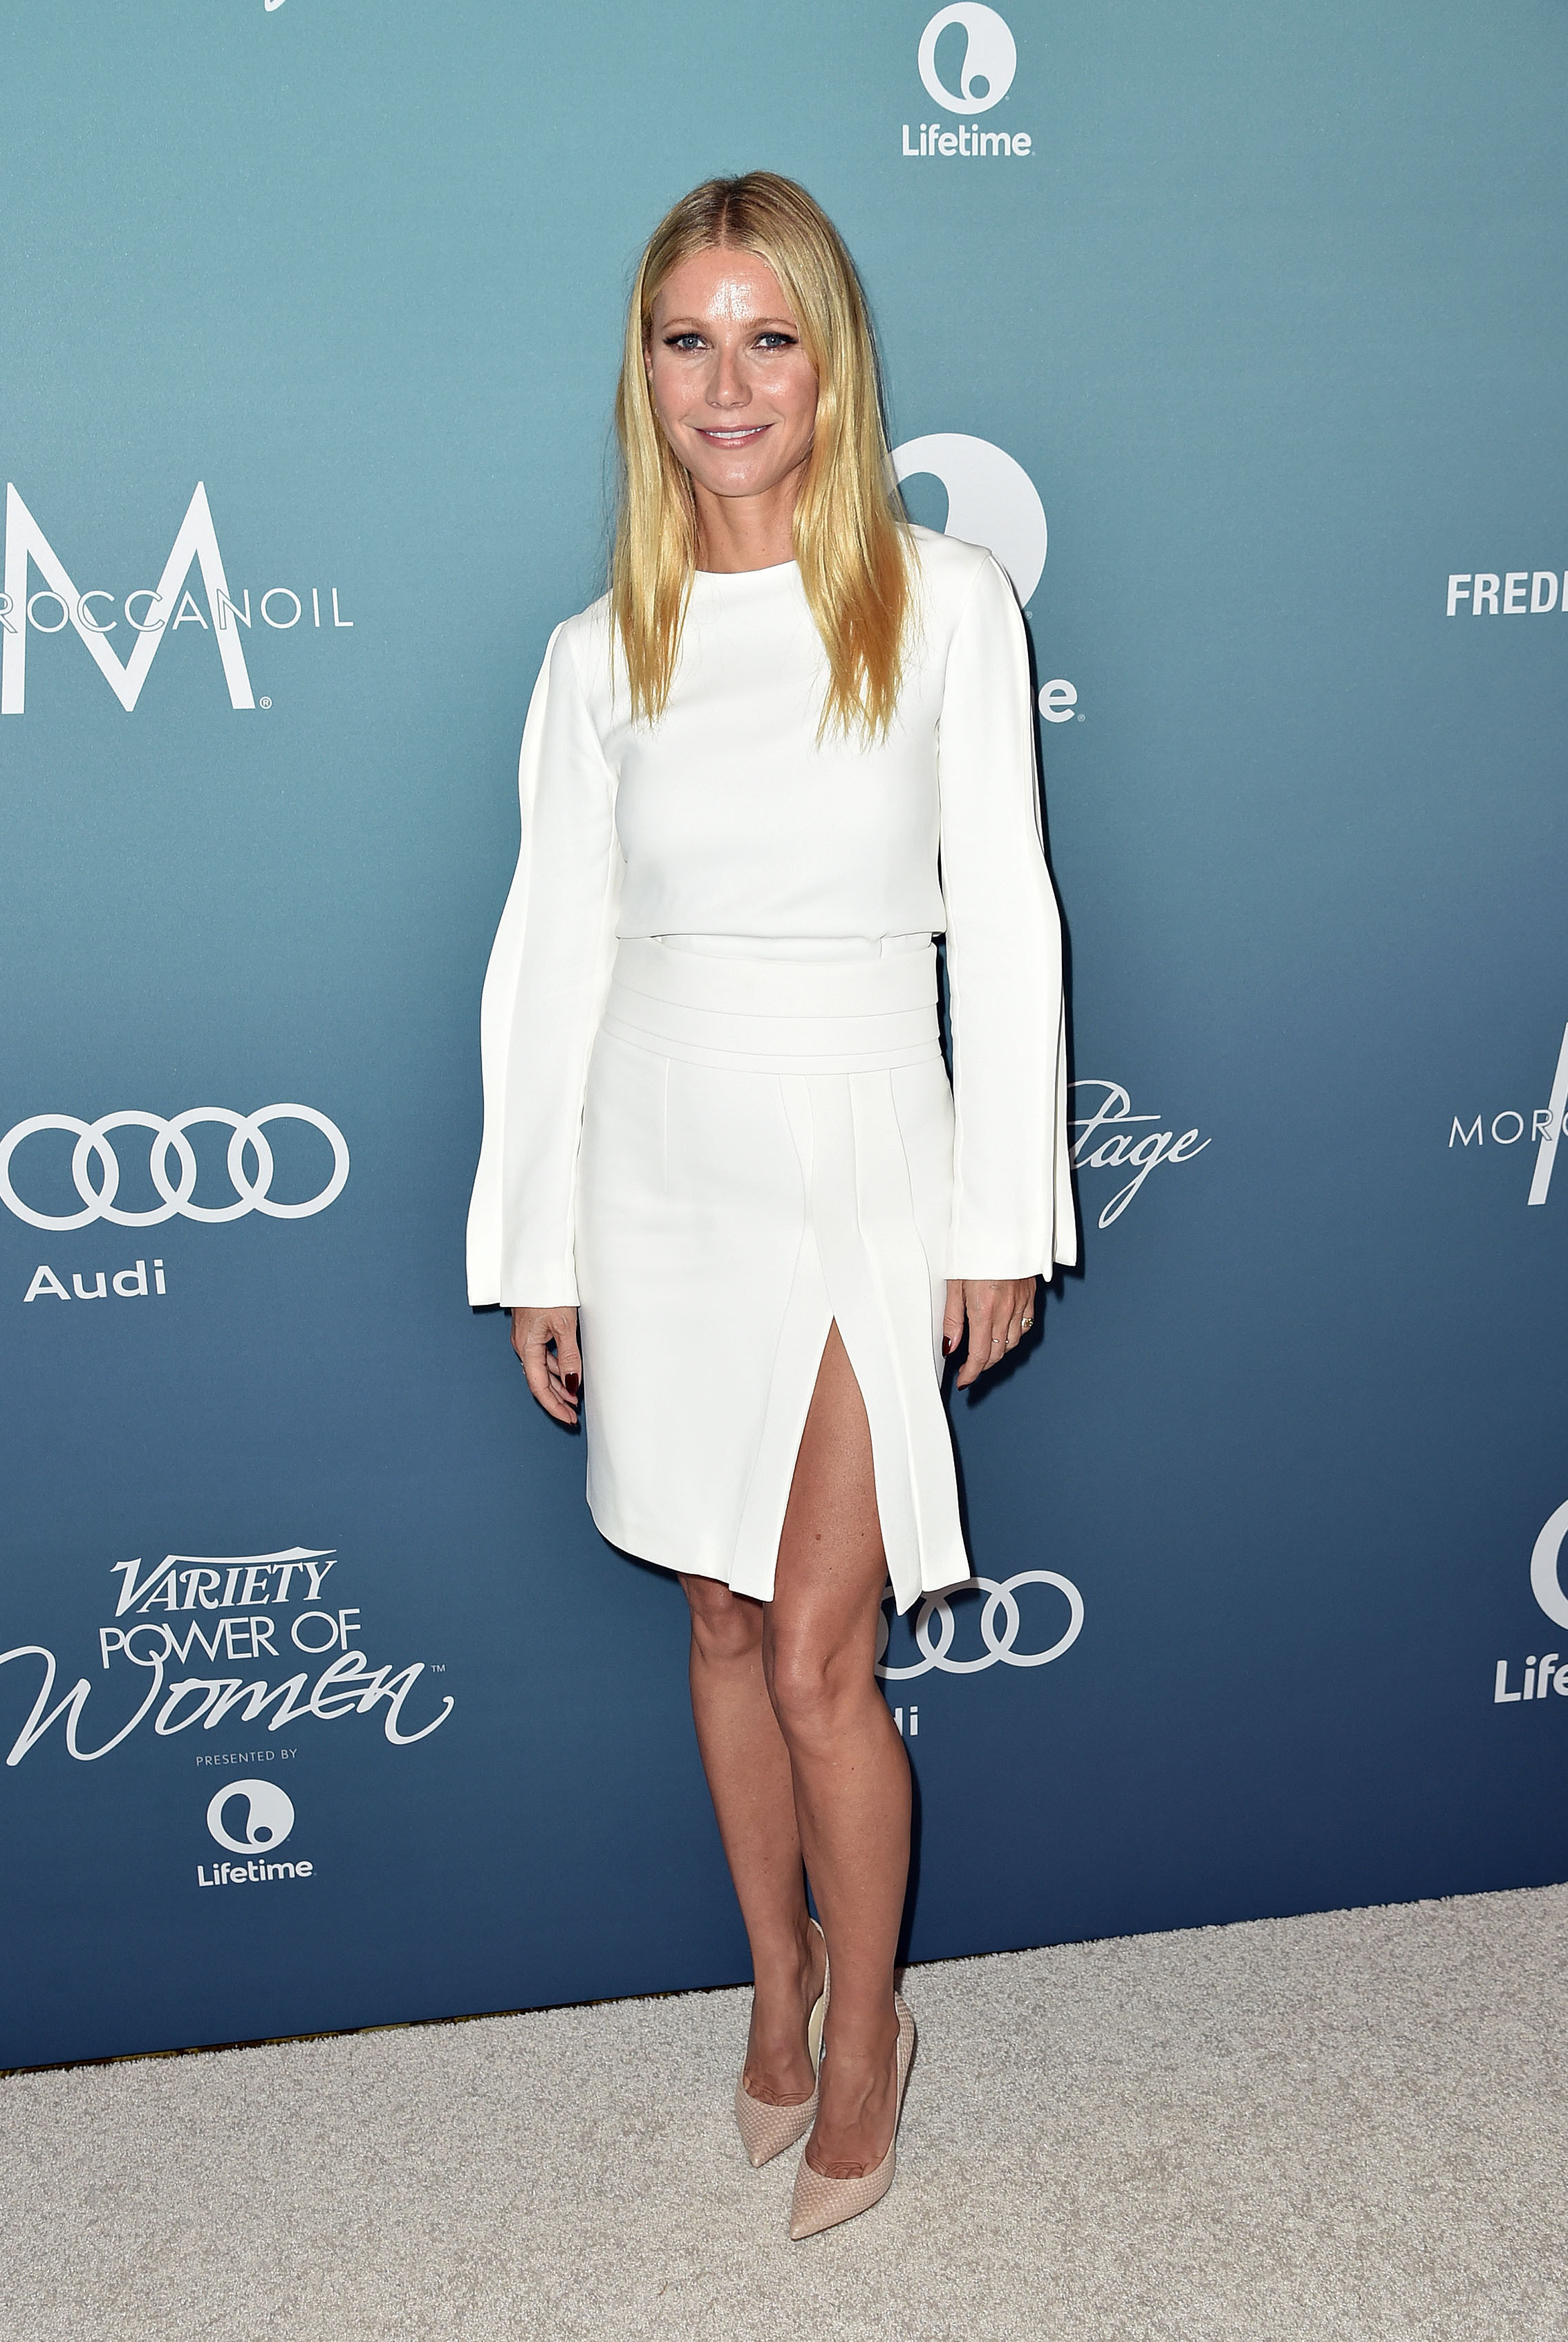 Gwyneth Paltrow on her perfect day: